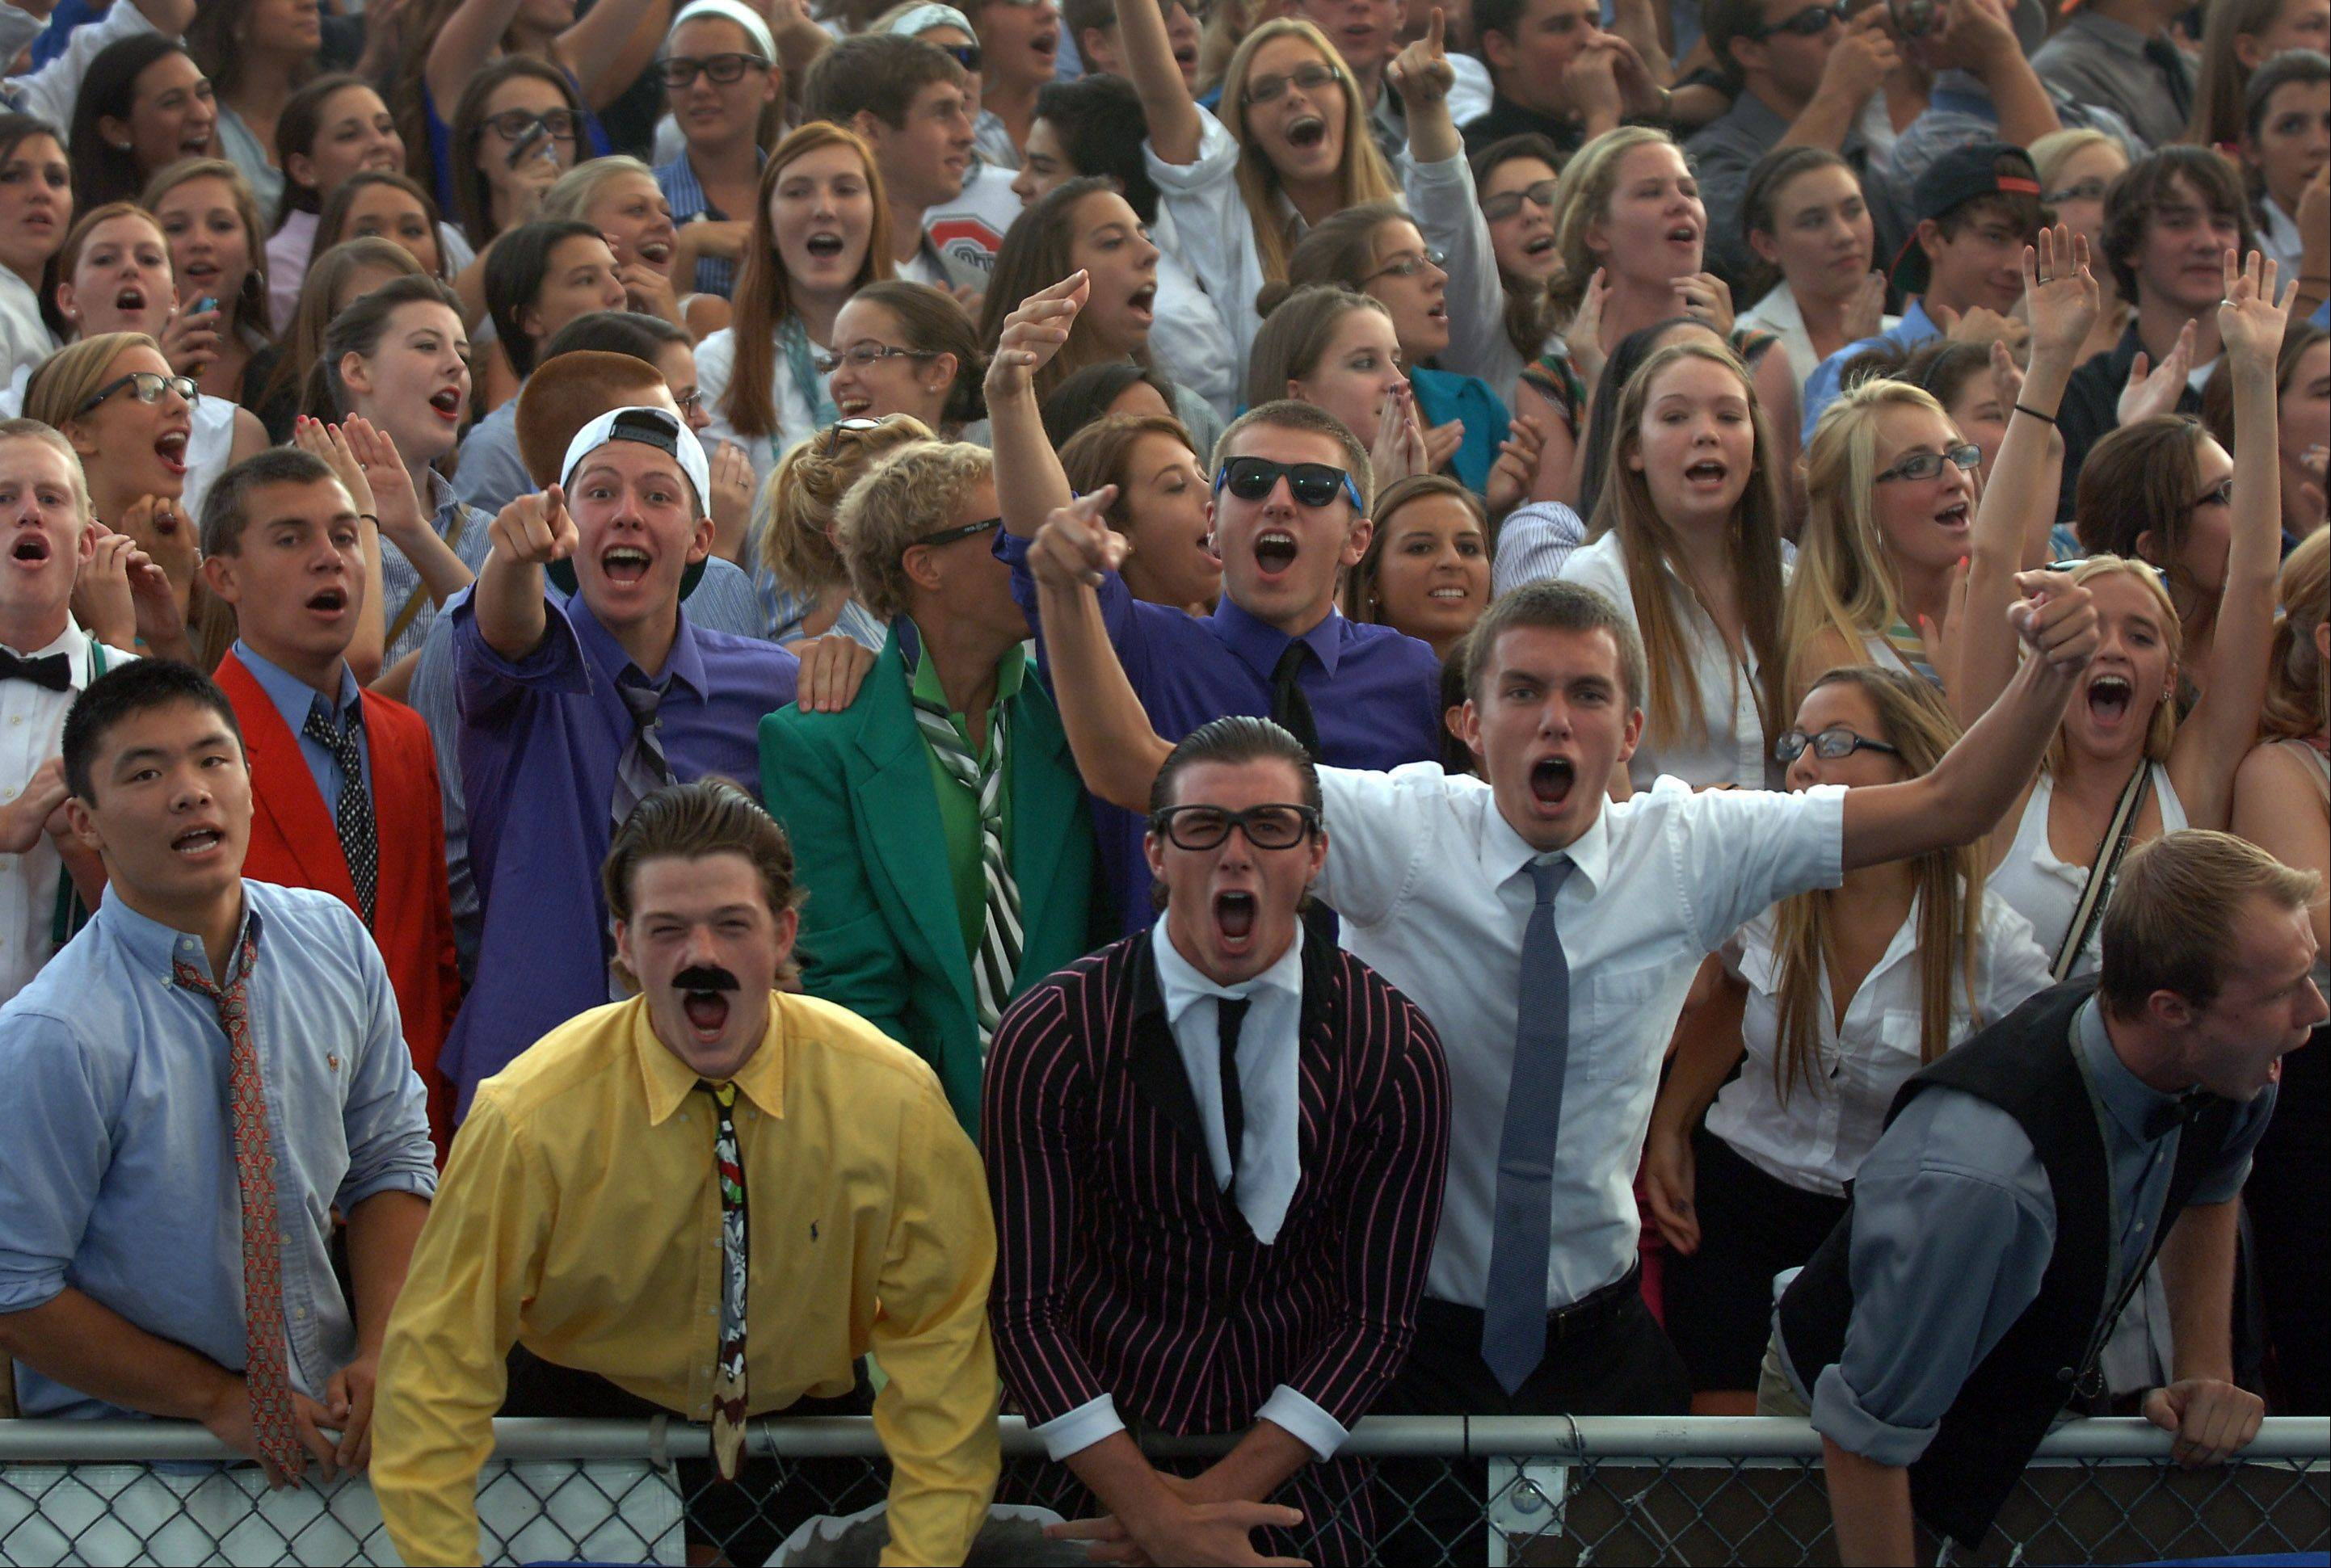 Lake Zurich football fans cheer on their team as the Bears enter the field to take on Fremd.